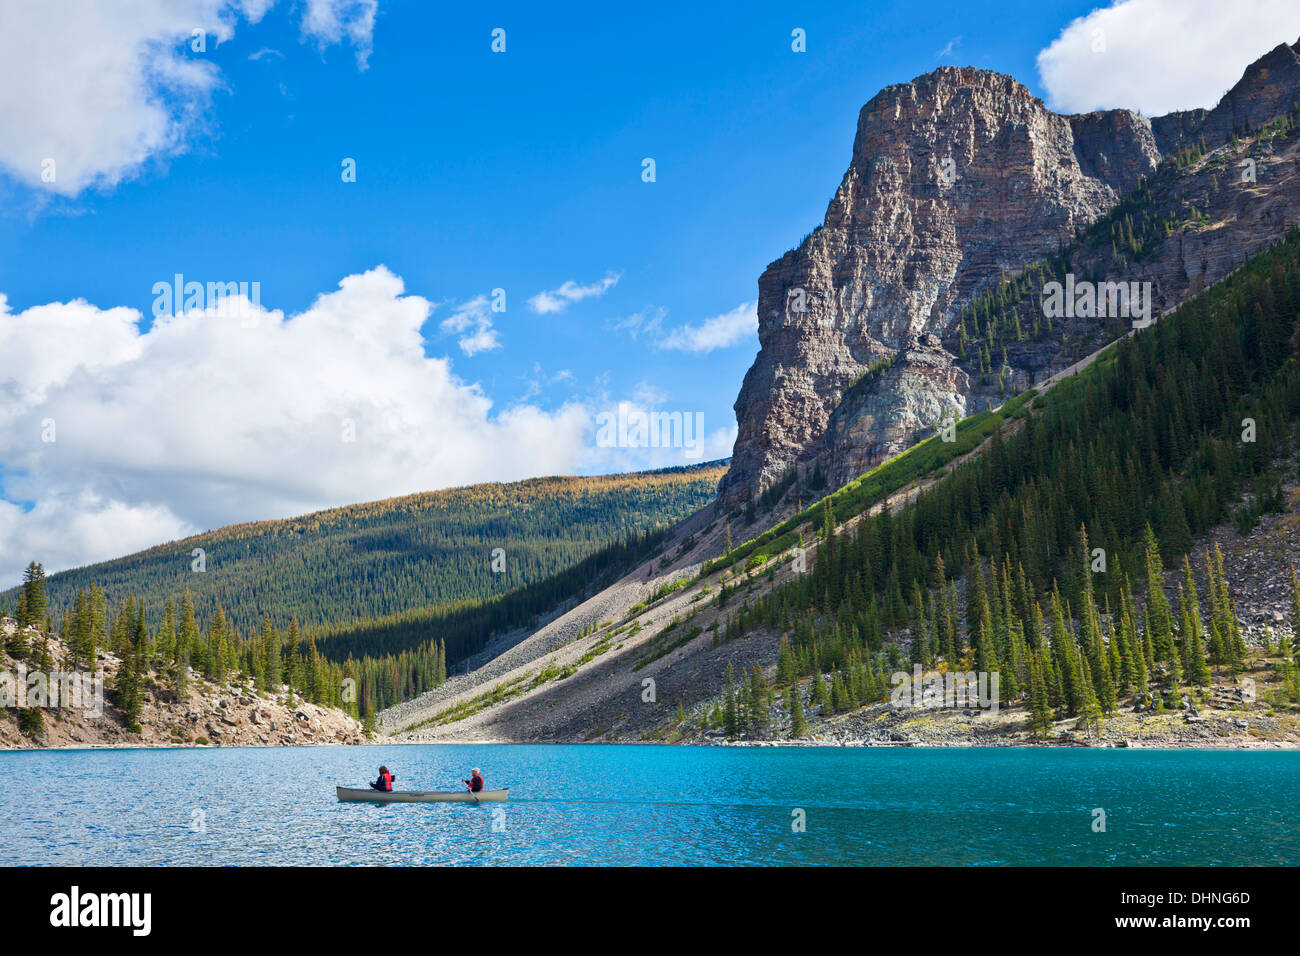 Two people  in a hire canoe on Moraine Lake Banff national Park Alberta Canada North America - Stock Image